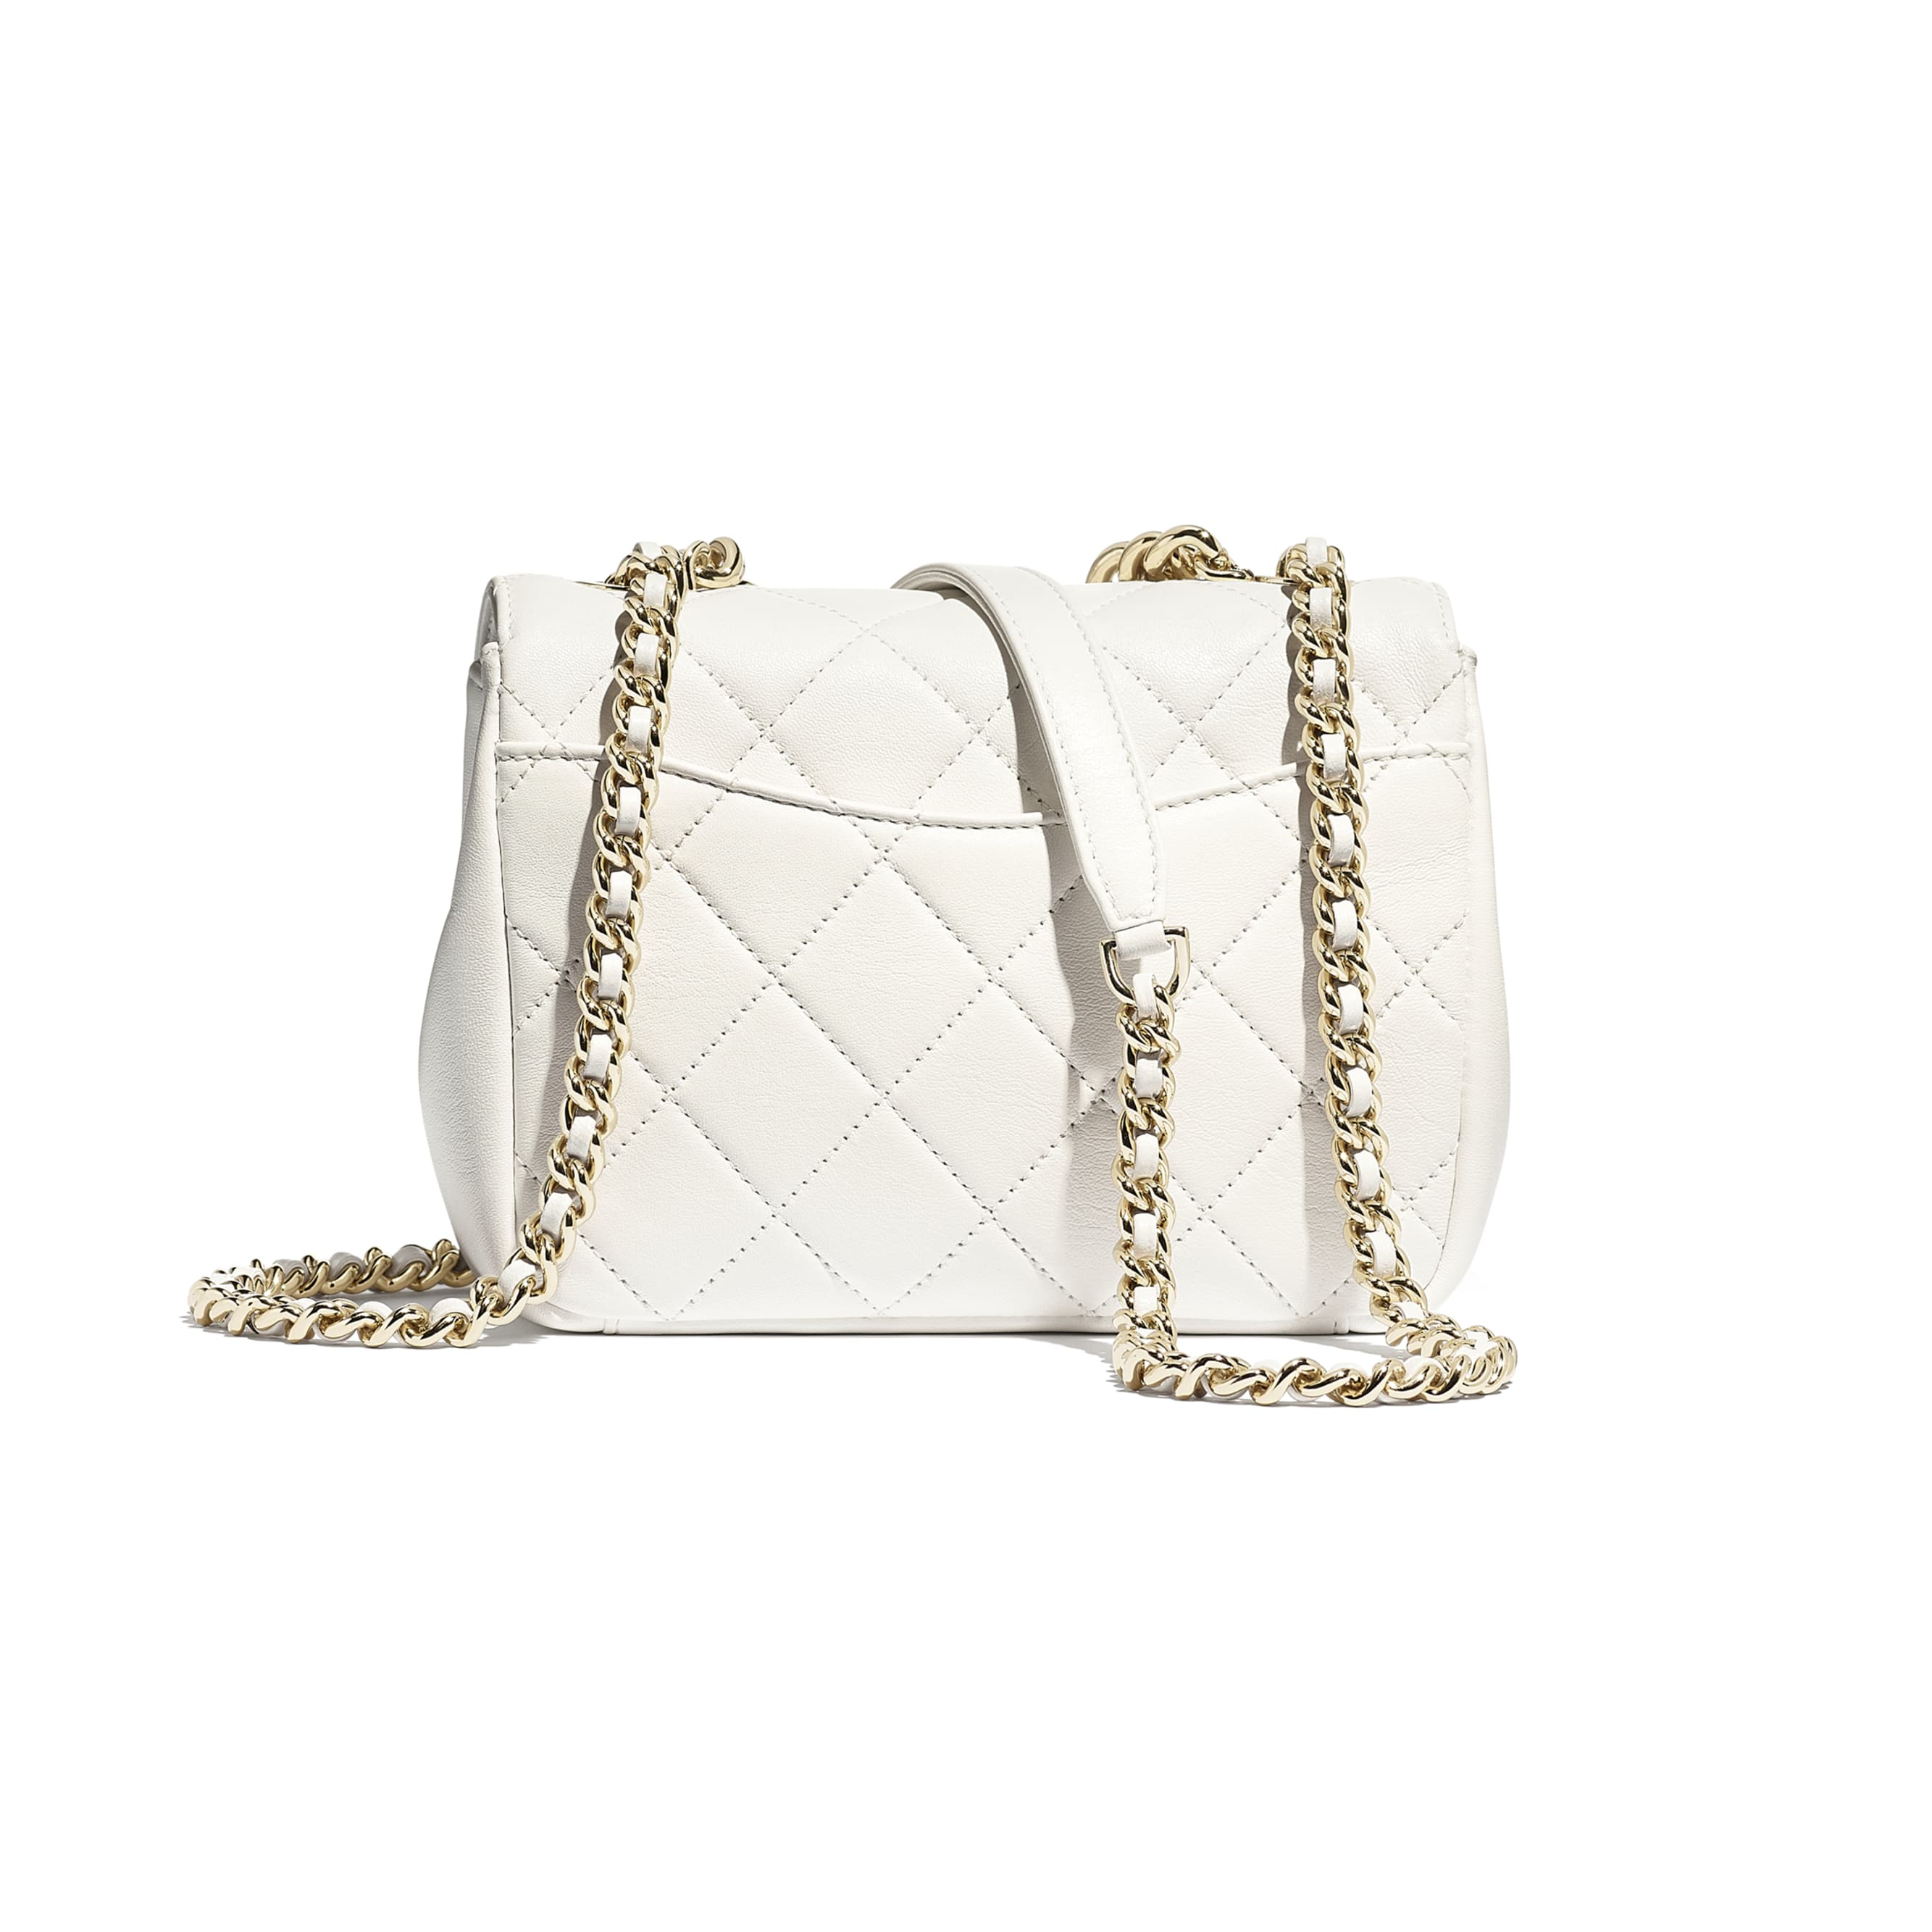 Flap Bag - White - Lambskin, Studs & Gold-Tone Metal - CHANEL - Alternative view - see standard sized version